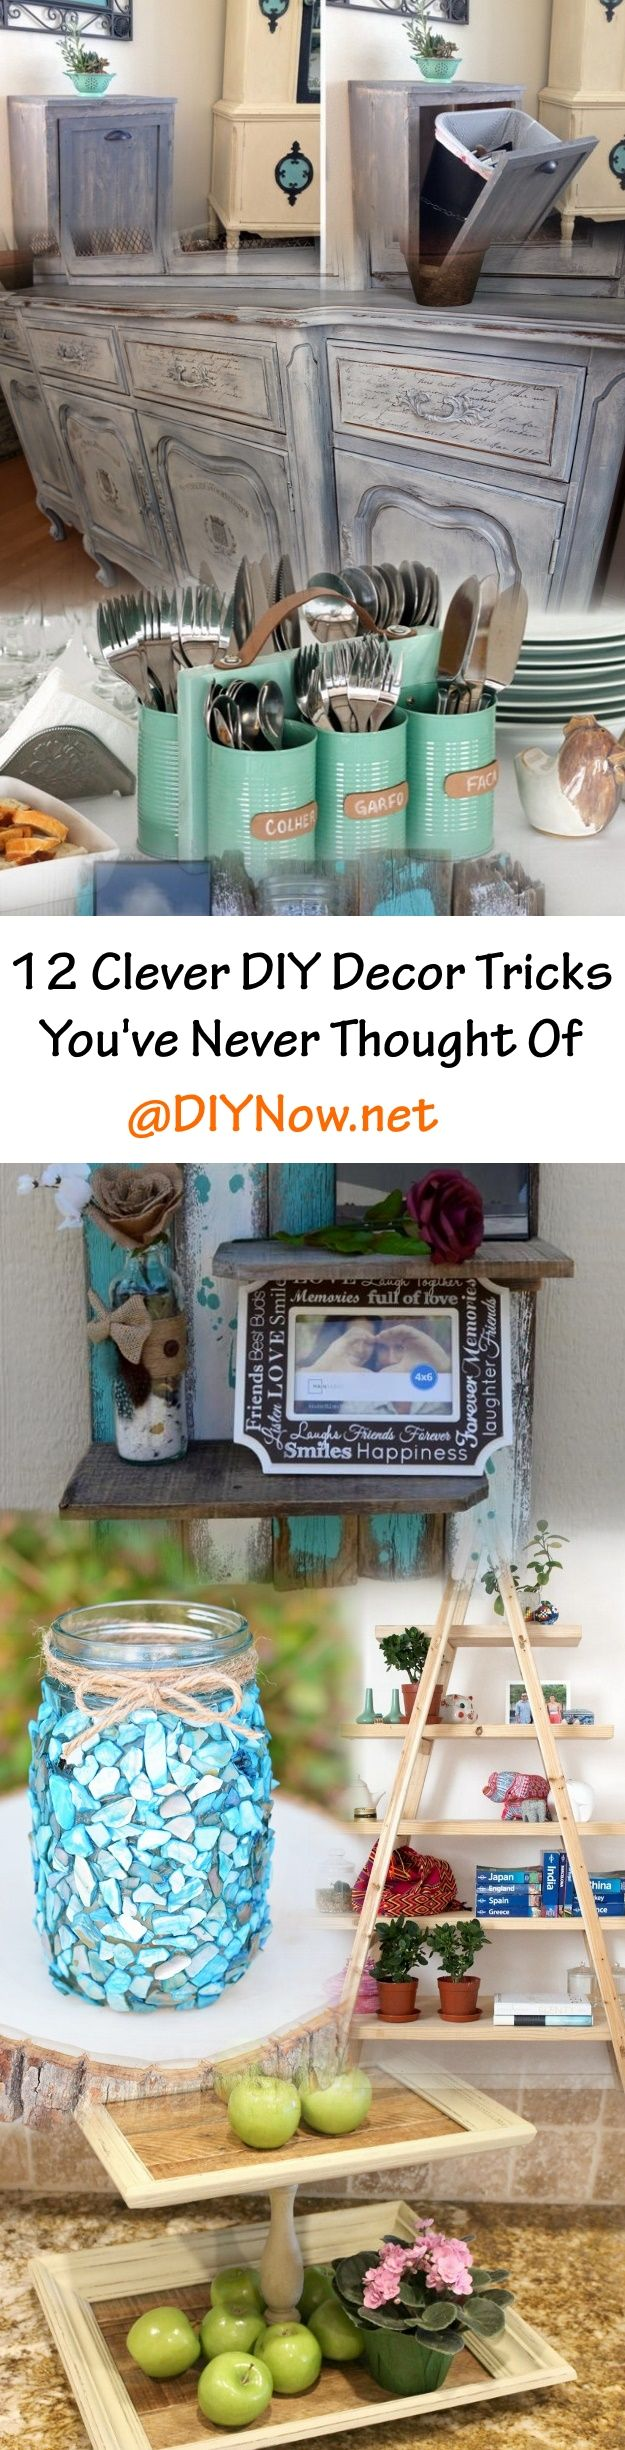 12 Clever DIY Decor Tricks Youve Never Thought Of